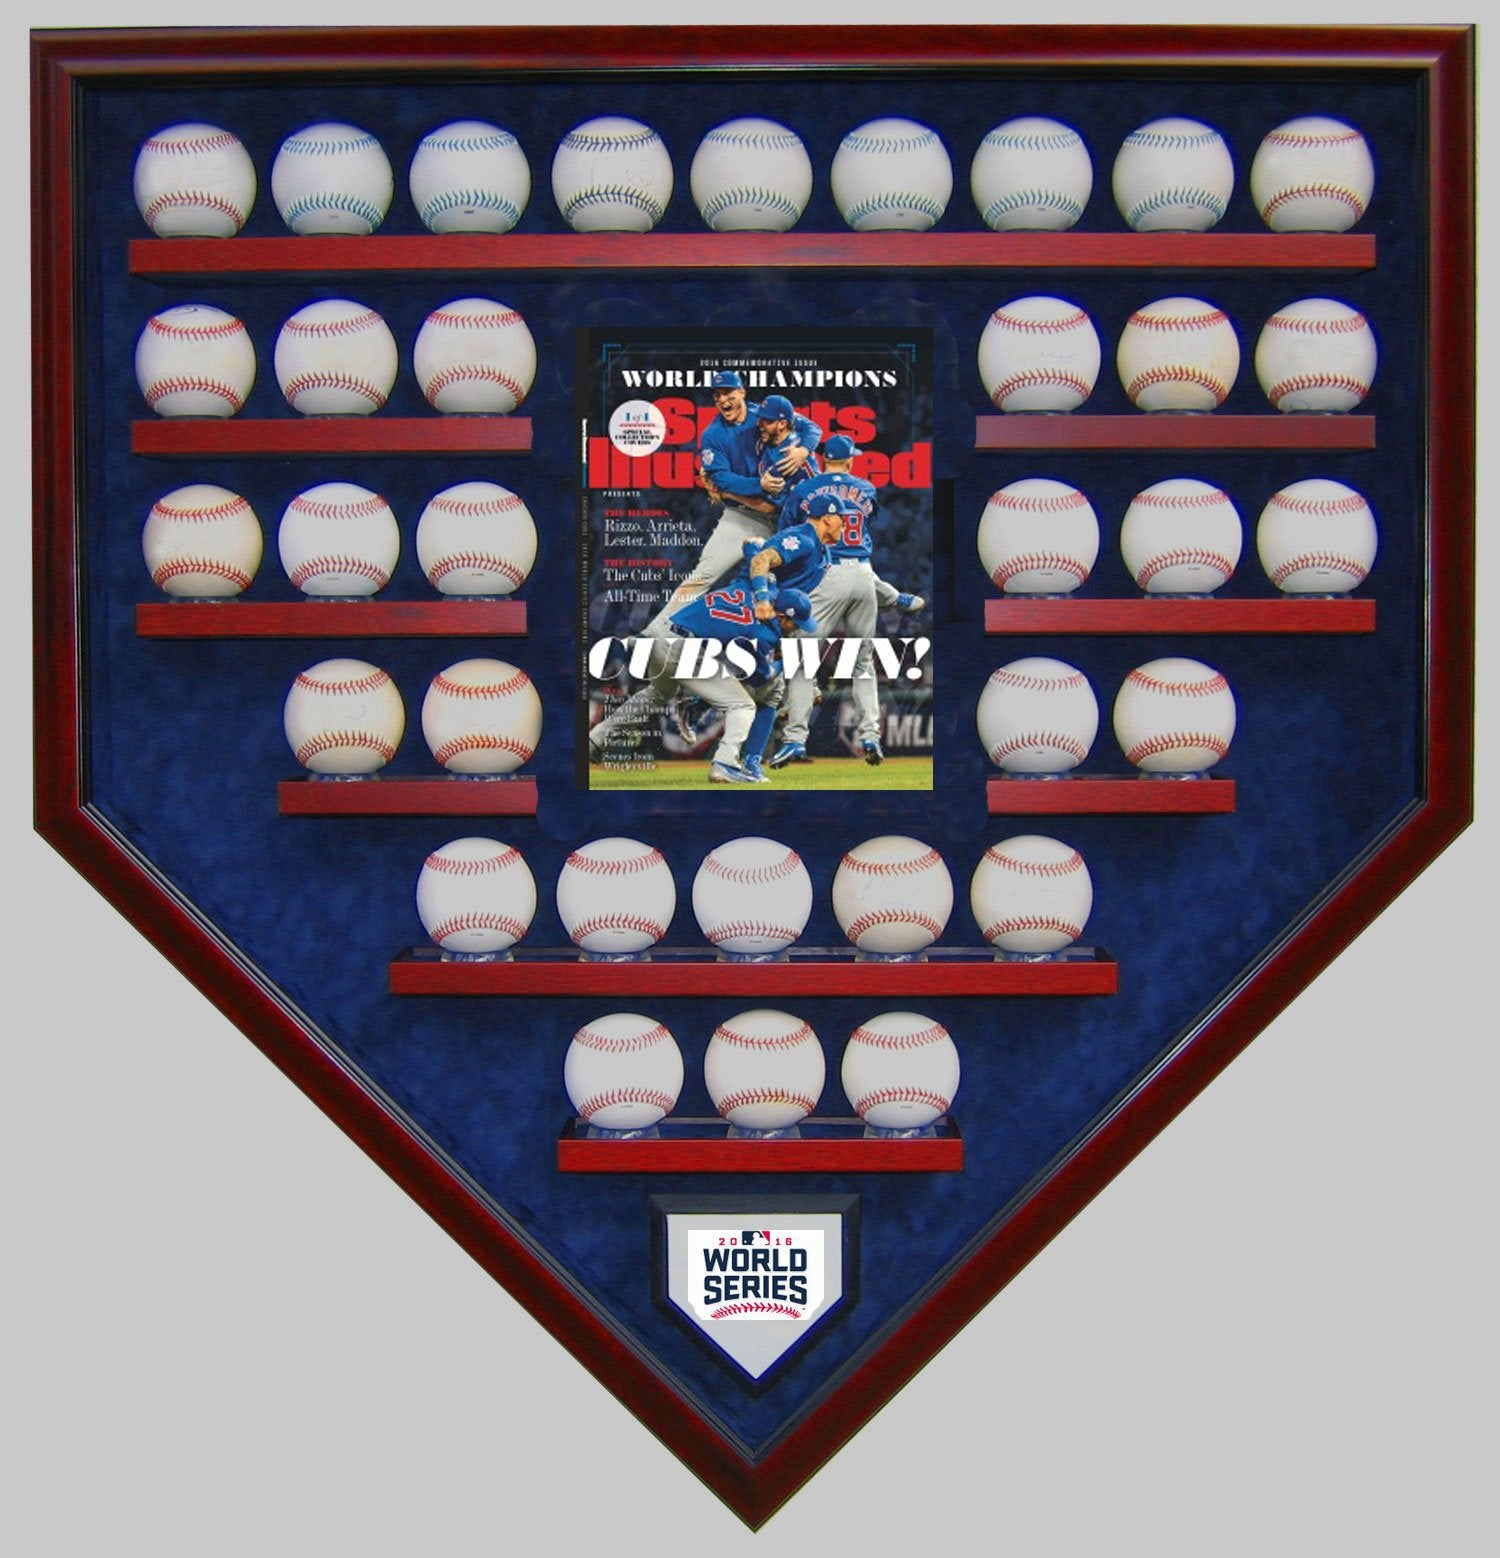 33 BASEBALL W/SI CHICAGO CUBS 2016 WORLD SERIES HOMEPLATE SHAPED DISPLAY CASE-Powers Sports Memorabilia